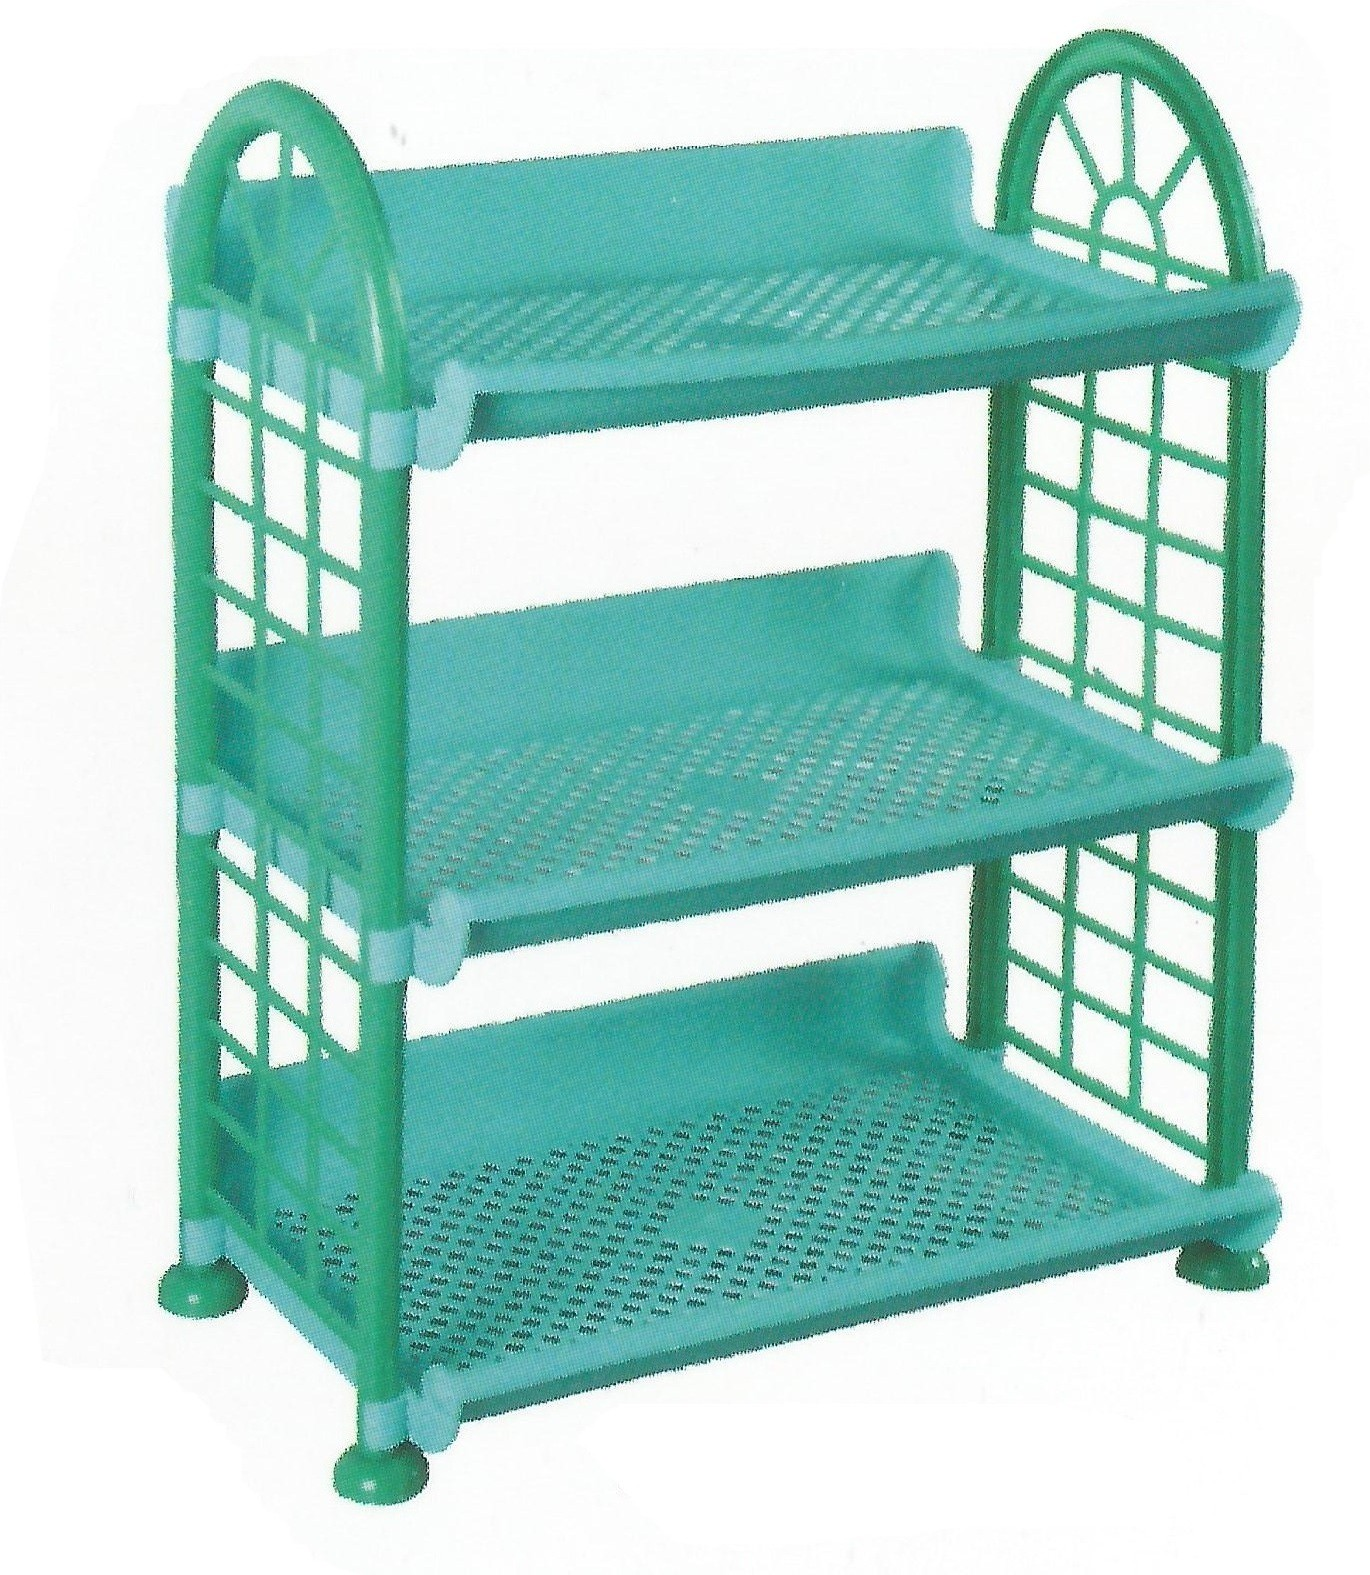 View De Ultimate 3 Compartments Foldable Beautiful Multipurpose Rack Plastic Wall Shelf(Number of Shelves - 3) Furniture (De Ultimate)